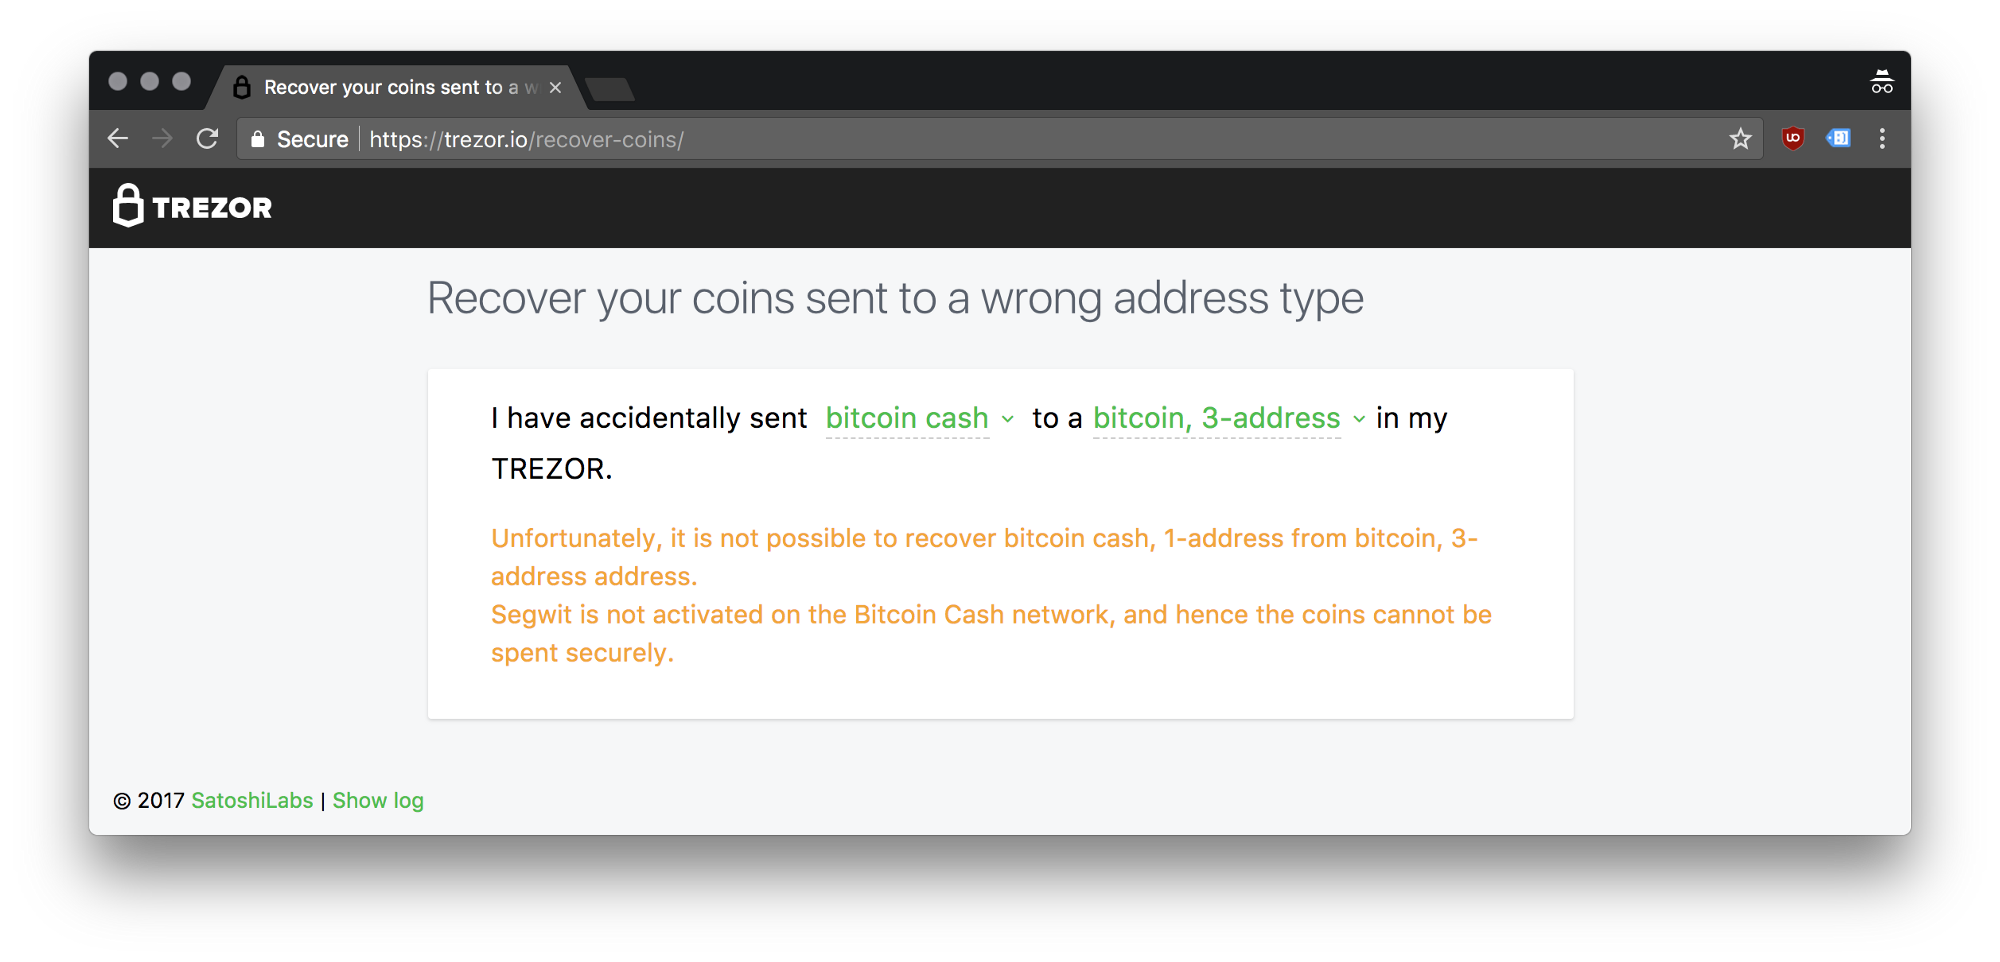 Guide coin recovery tool trezor blog as a consequence there is no safe way how to recover your bitcoin cash sent to a p2sh address this applies to bitcoin cash sent to litecoin 3m addresses ccuart Gallery